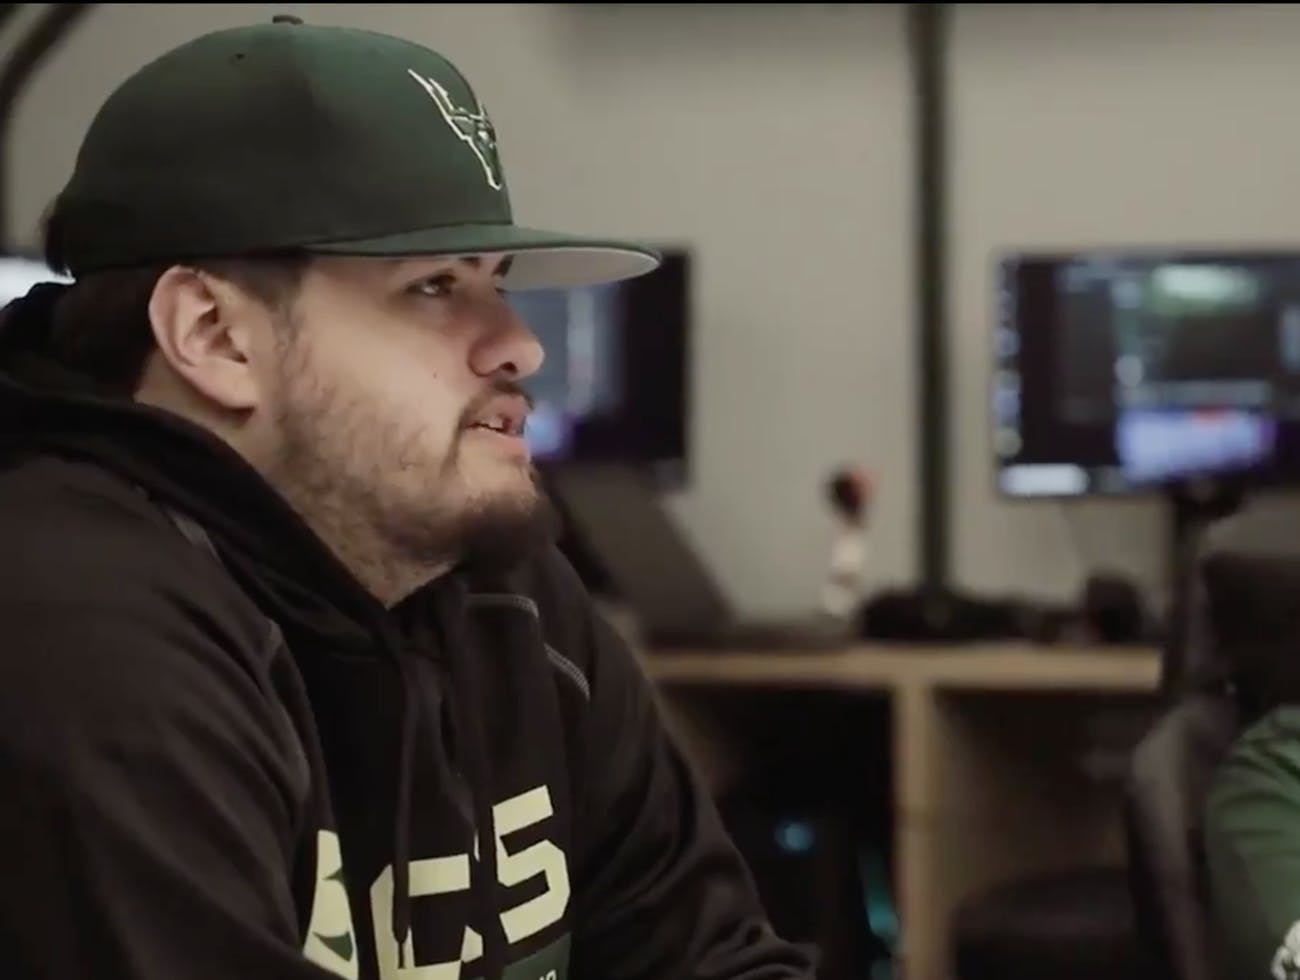 Friends say Timothy Anselimo, who goes by @oLARRY2K in the gaming community, was shot at the Madden tournament on Sunday, an event confirmed by his mother, who asked his supporters to keep him in their prayers. He appears here in a promotional video by BucksGG, an eSports team of which he's a member.